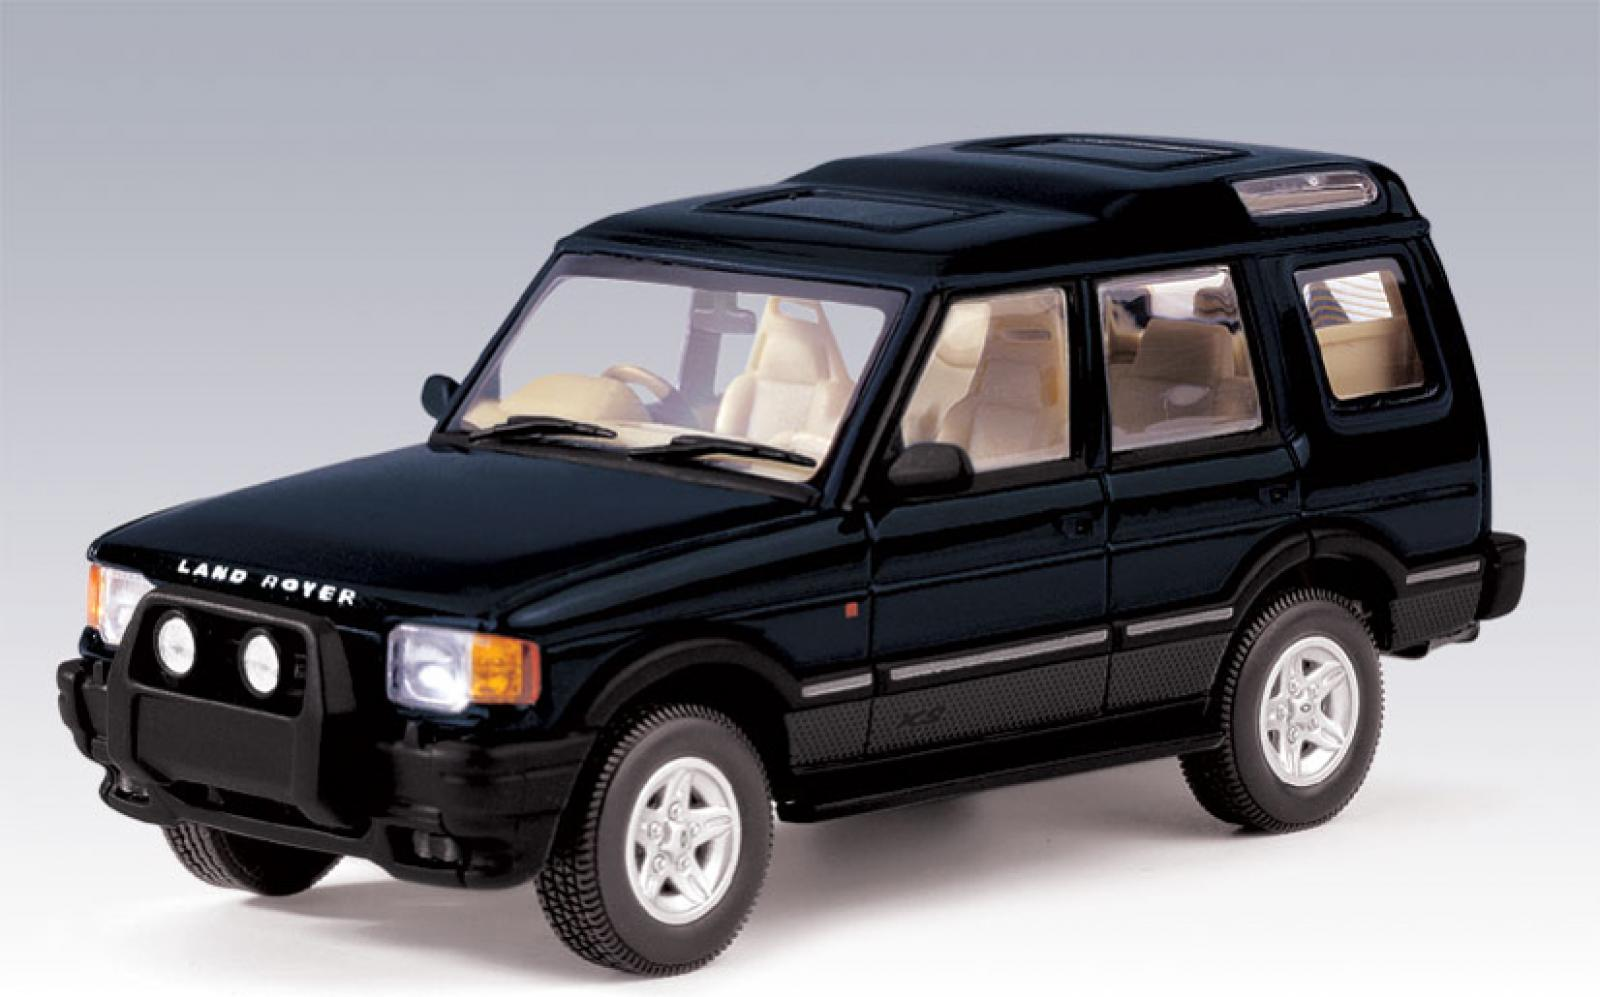 1994 Land Rover Discovery Information And Photos Zombiedrive 1999 Disco 2 Wiring Diagram 800 1024 1280 1600 Origin